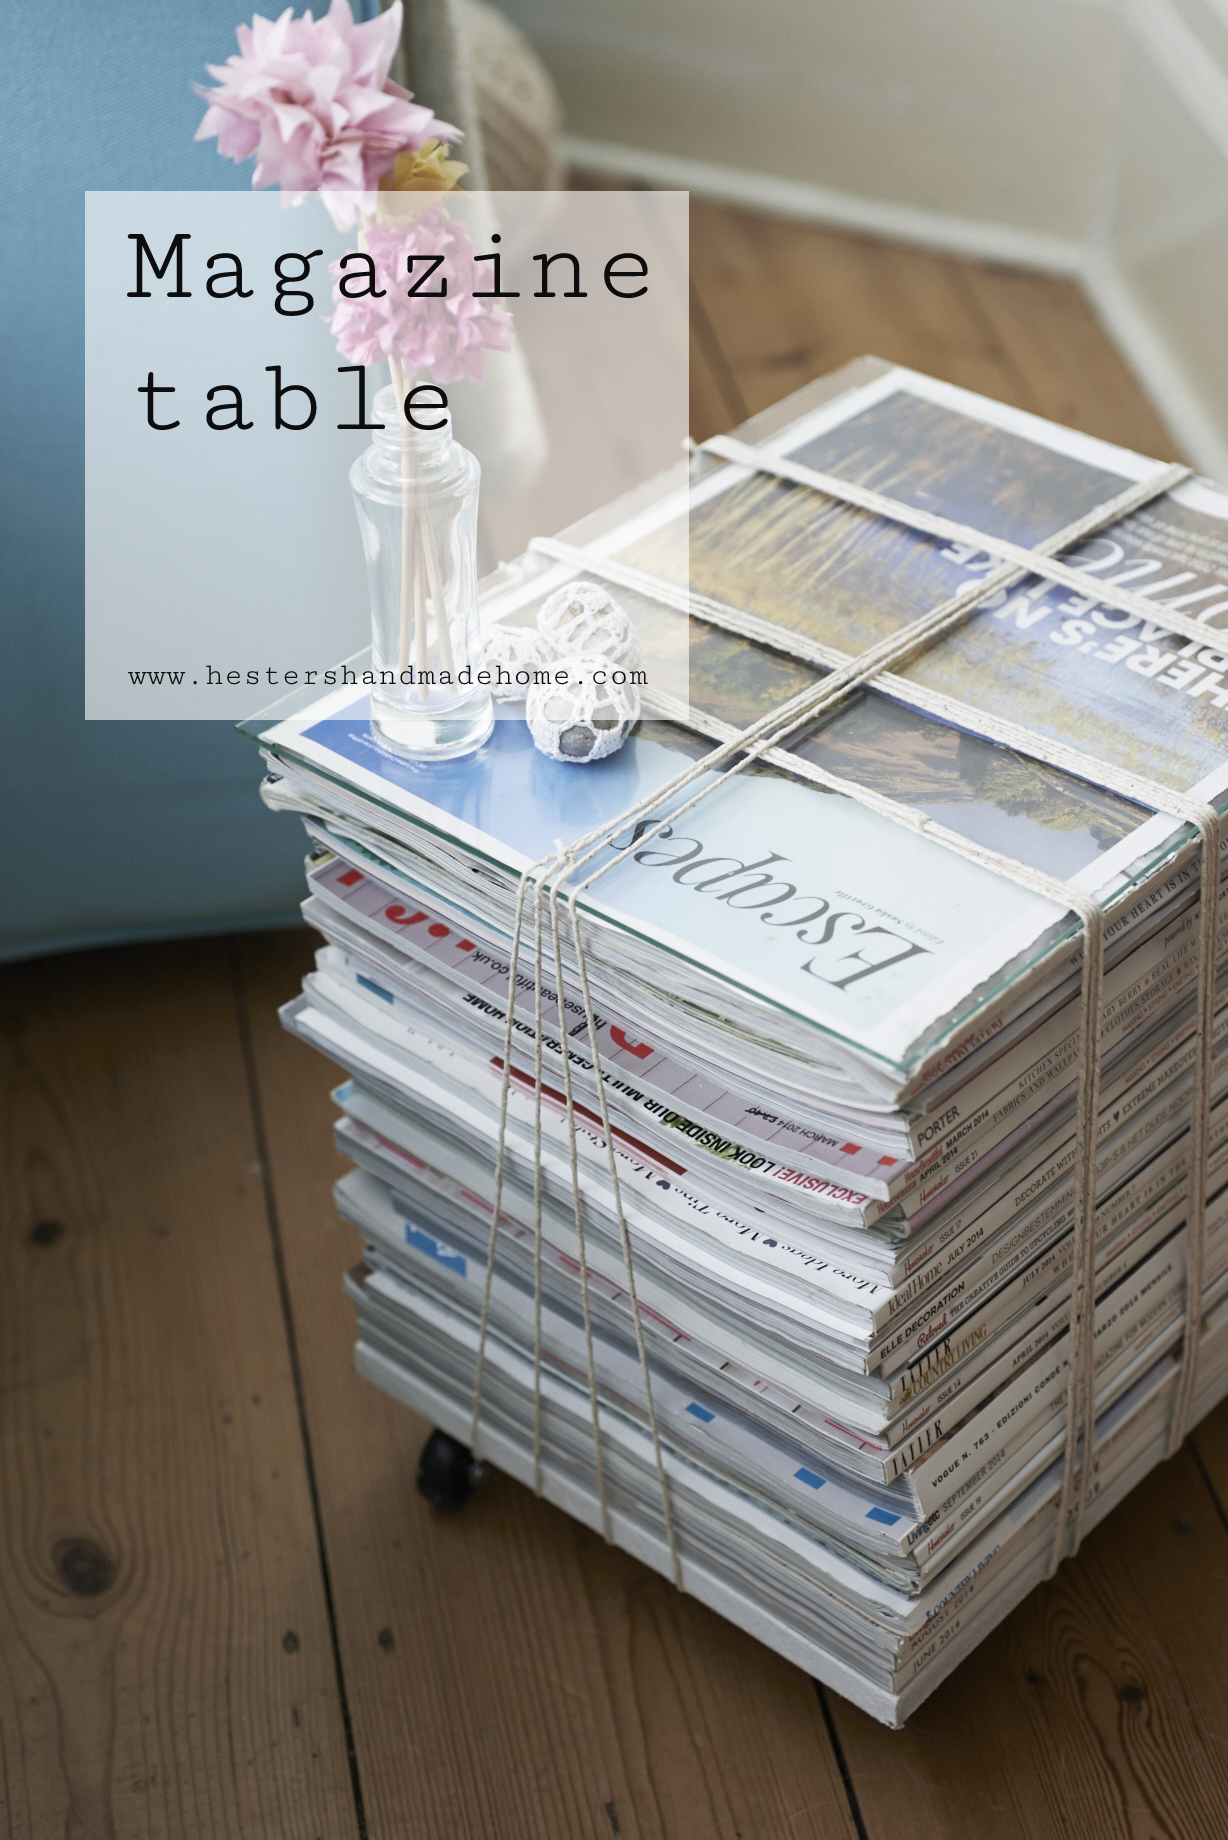 Magazine table, project from the Furniture Hacks book by Hester's Handmade Home